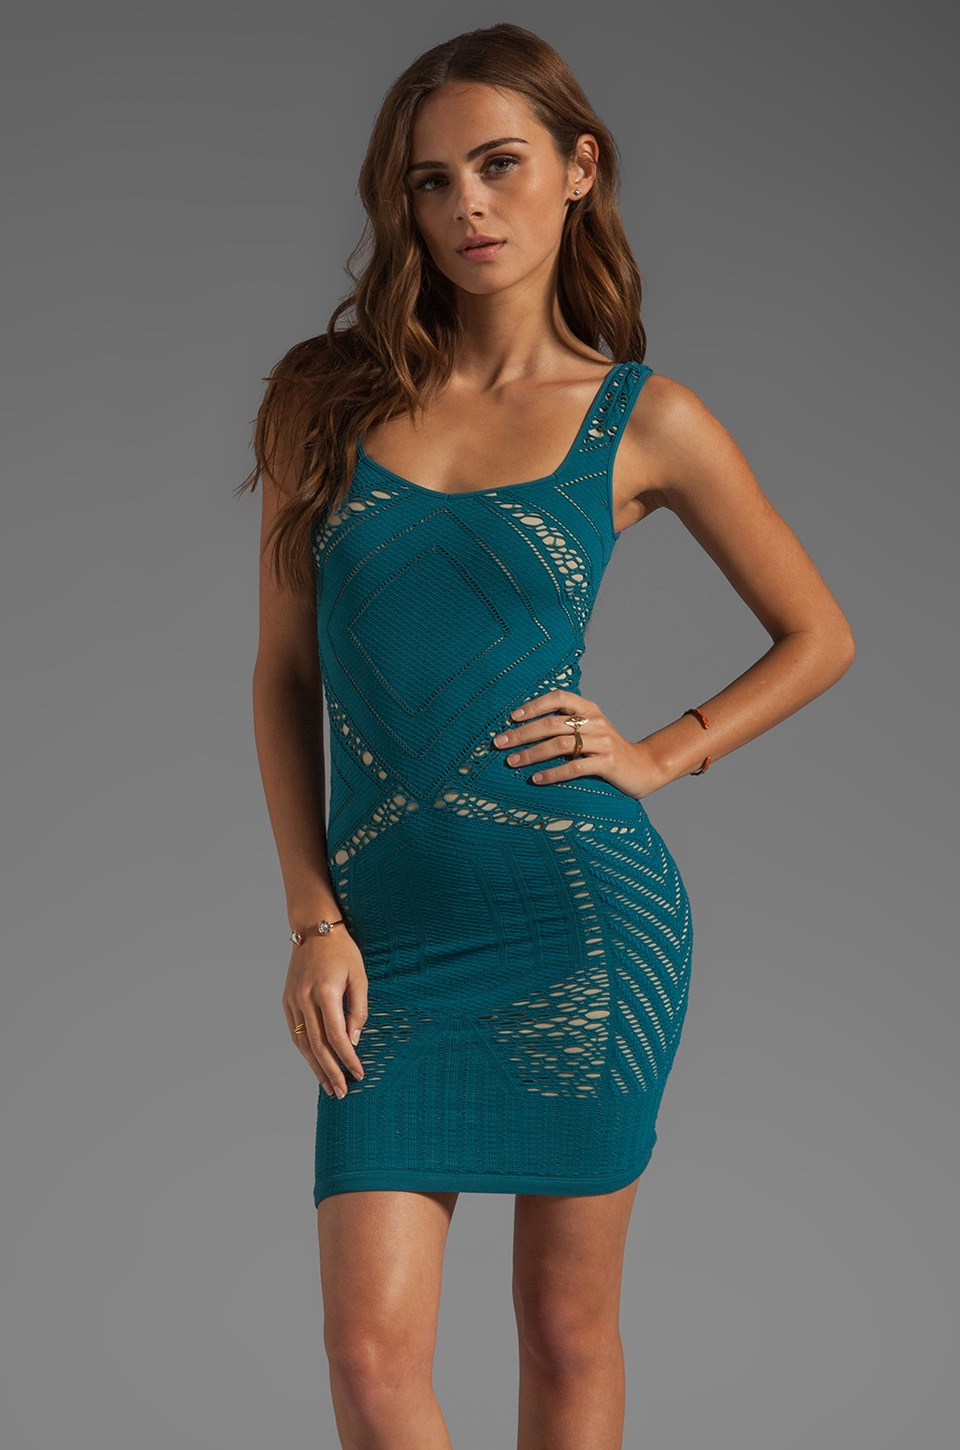 Free People Medallion Slip Dress in Deep Teal Combo